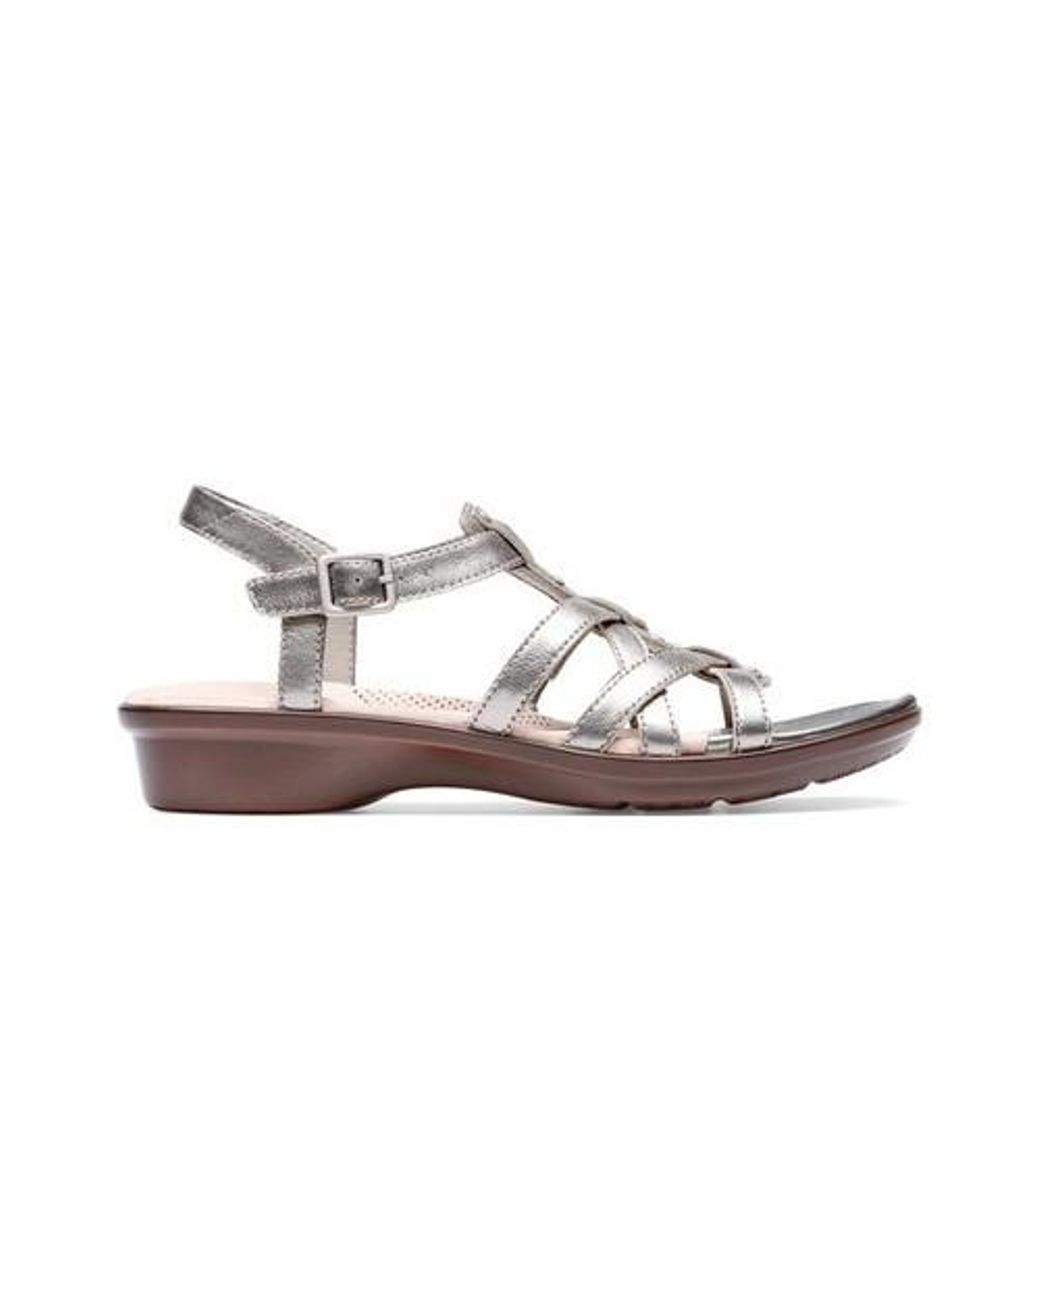 a03213b02 Long-Touch to Zoom. Clarks - Metallic Loomis Katey Strappy Sandal ...